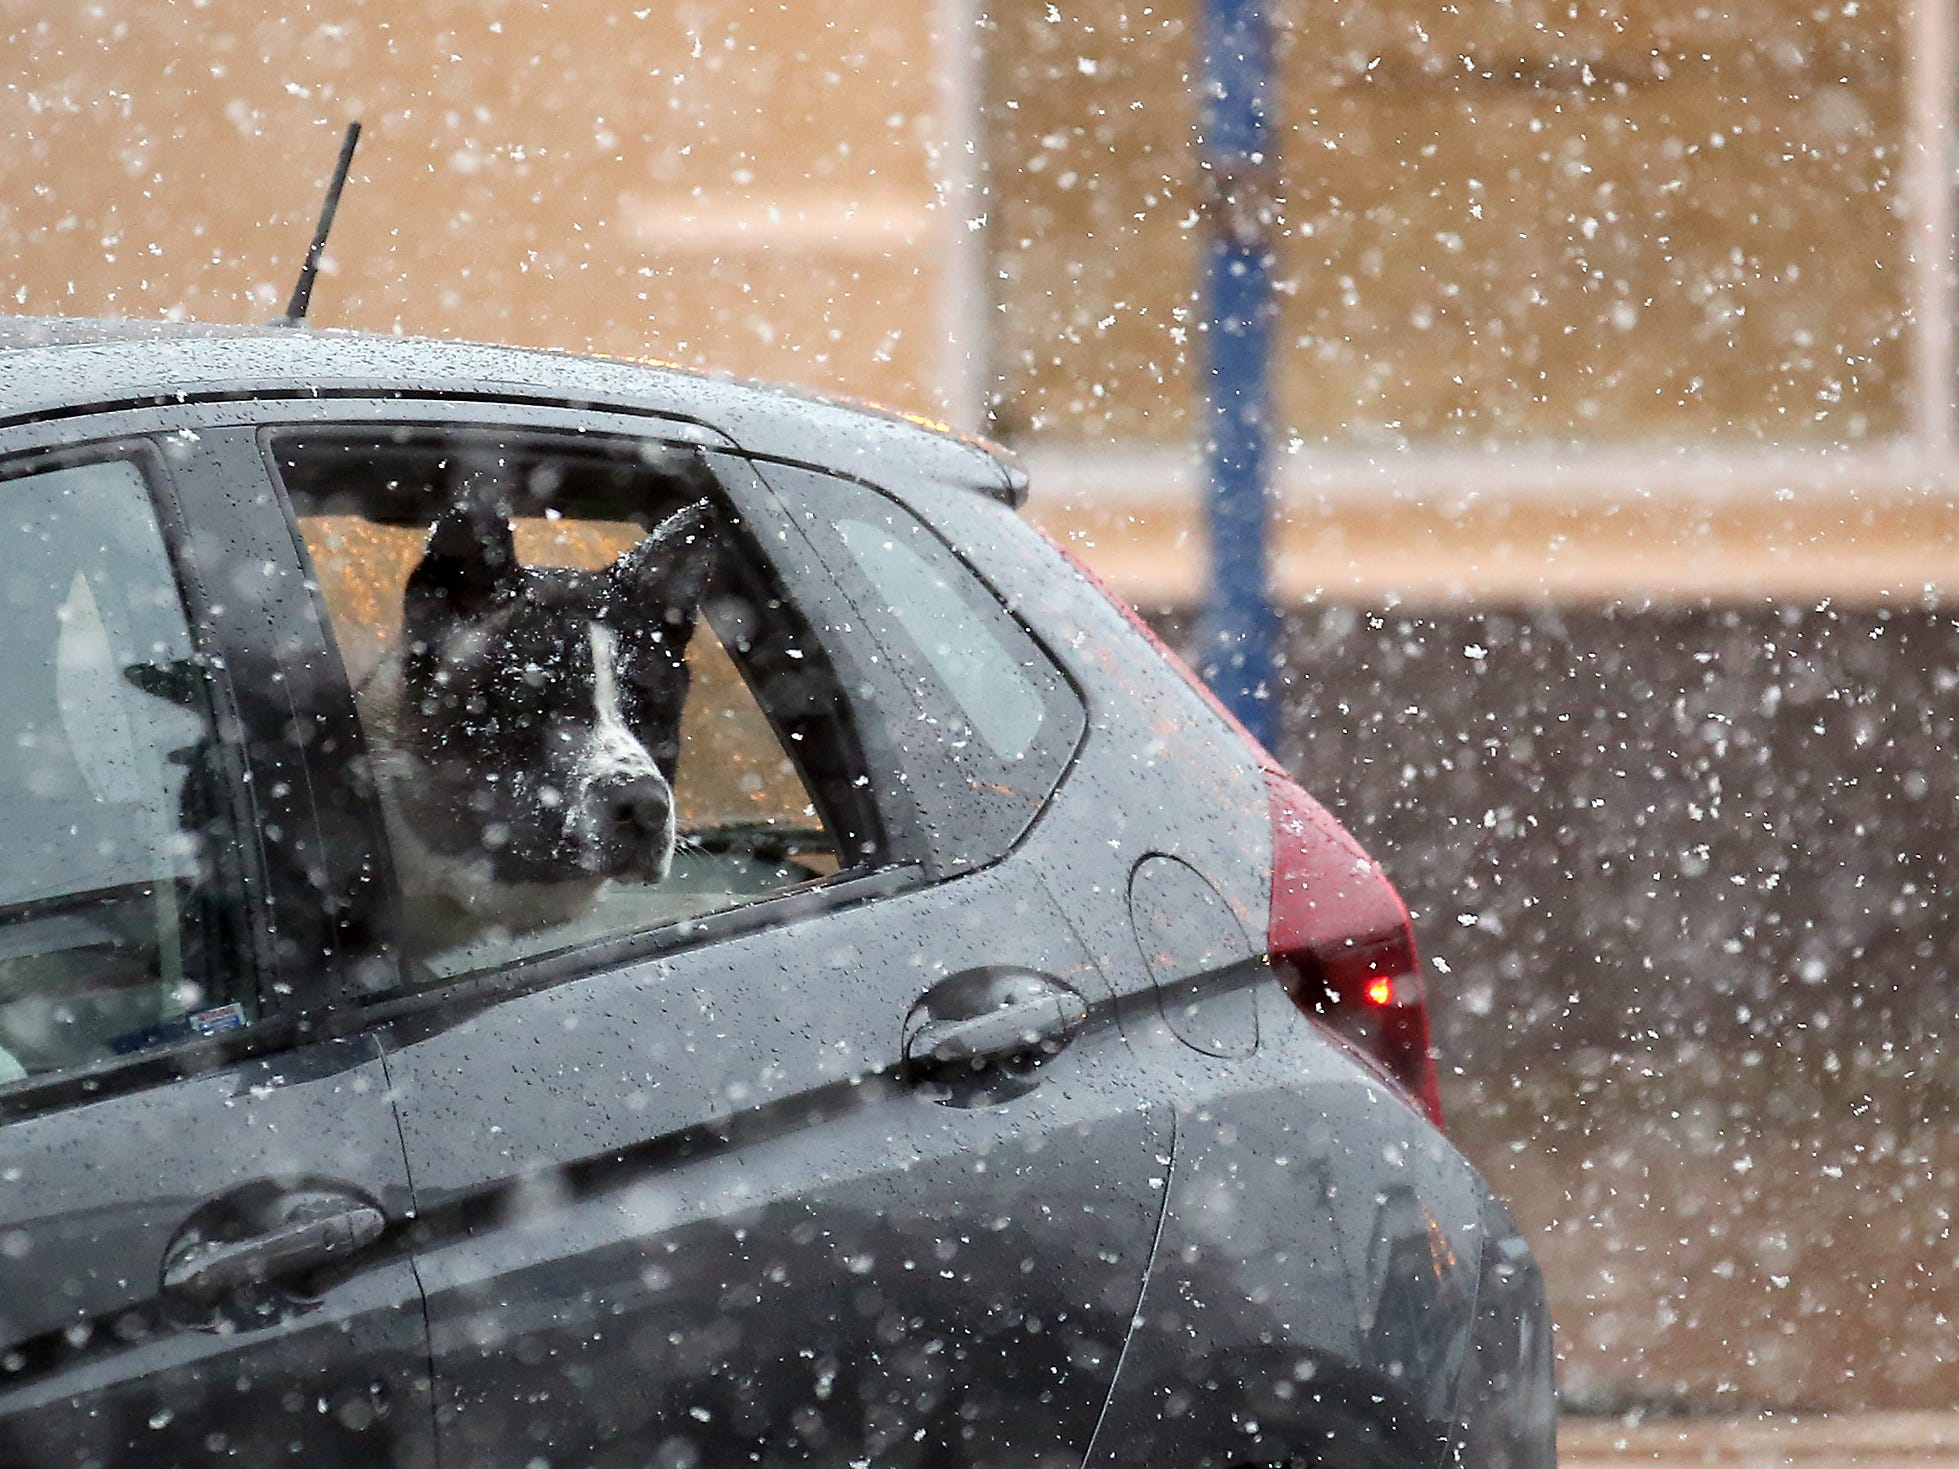 A dog sticks its head out the window as a car travels through the snowstorm in downtown Poulsbo on Sunday, February 3, 2019.